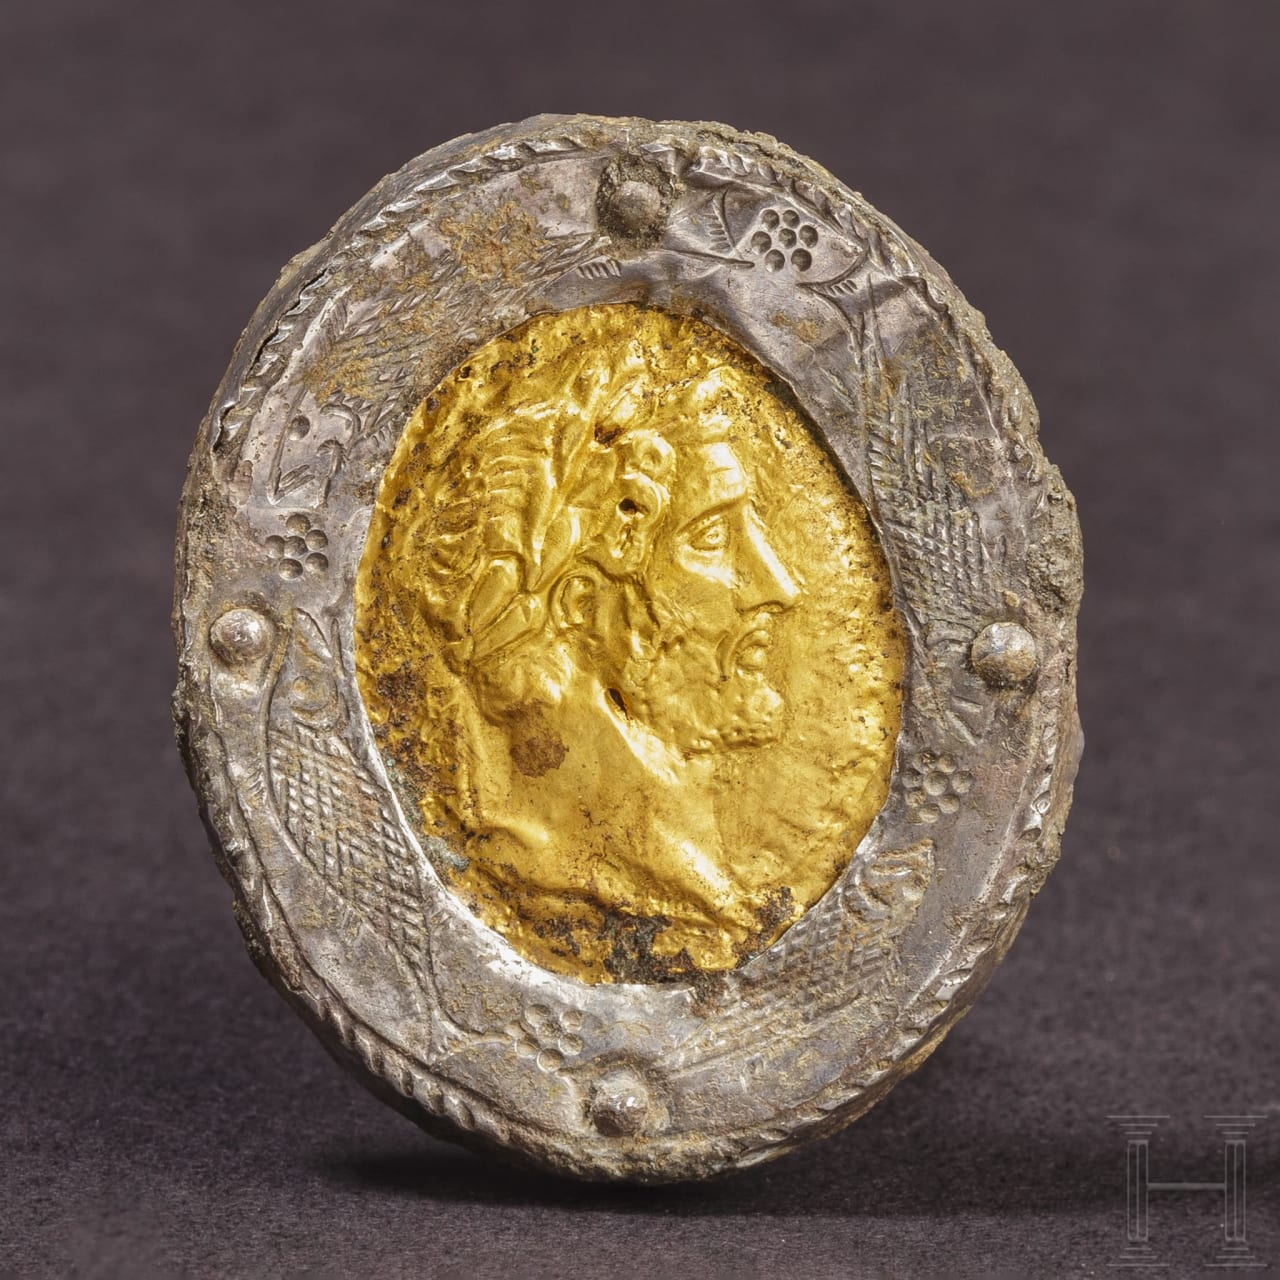 A Roman brooch with the golden portrait of Antoninus Pius, mid-2nd - 3rd century